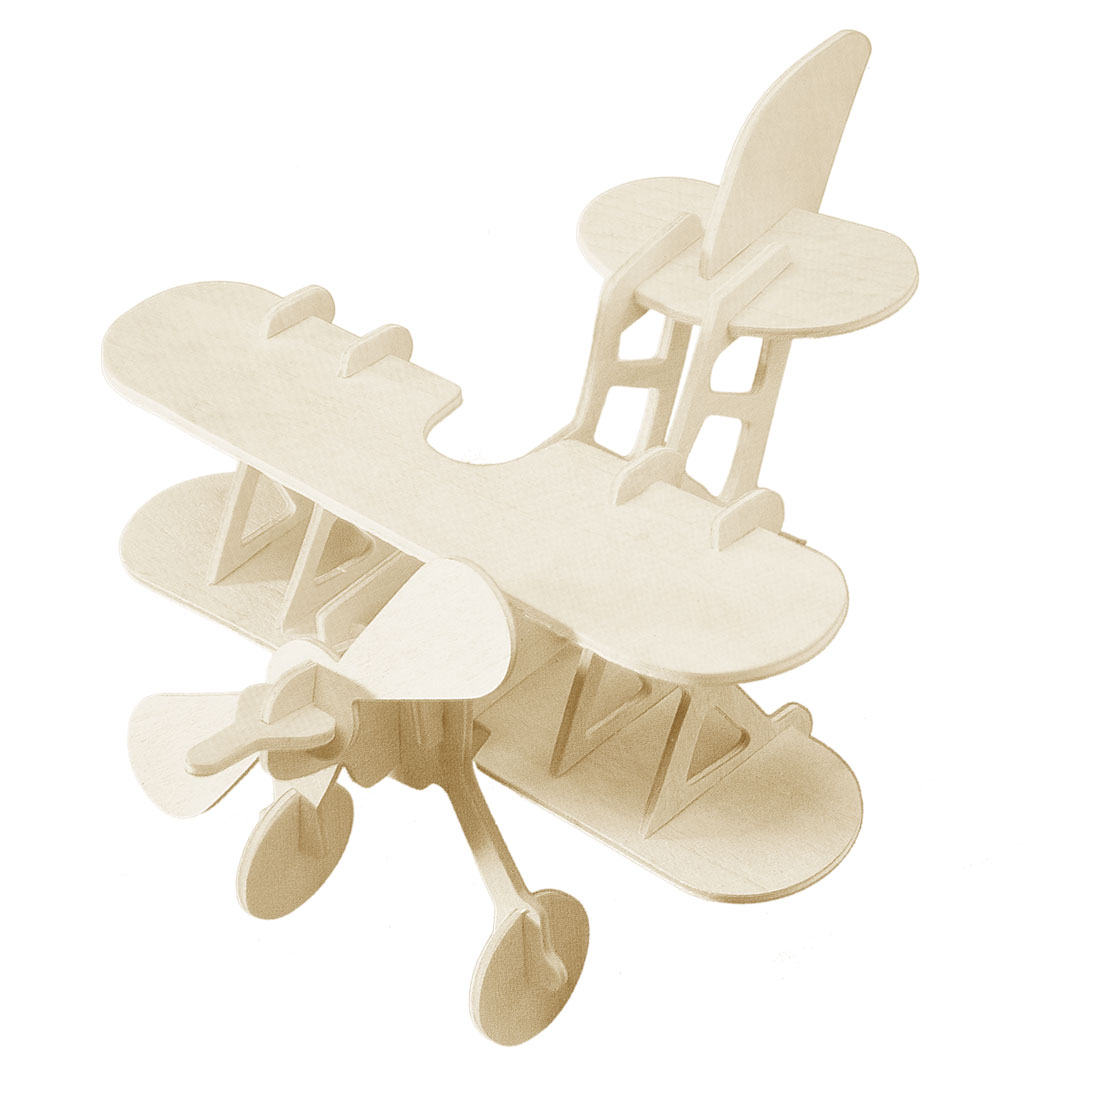 Kids DIY Lover 3D Puzzle Bi-Plane Model Woodcraft Kit Intelligent Toy